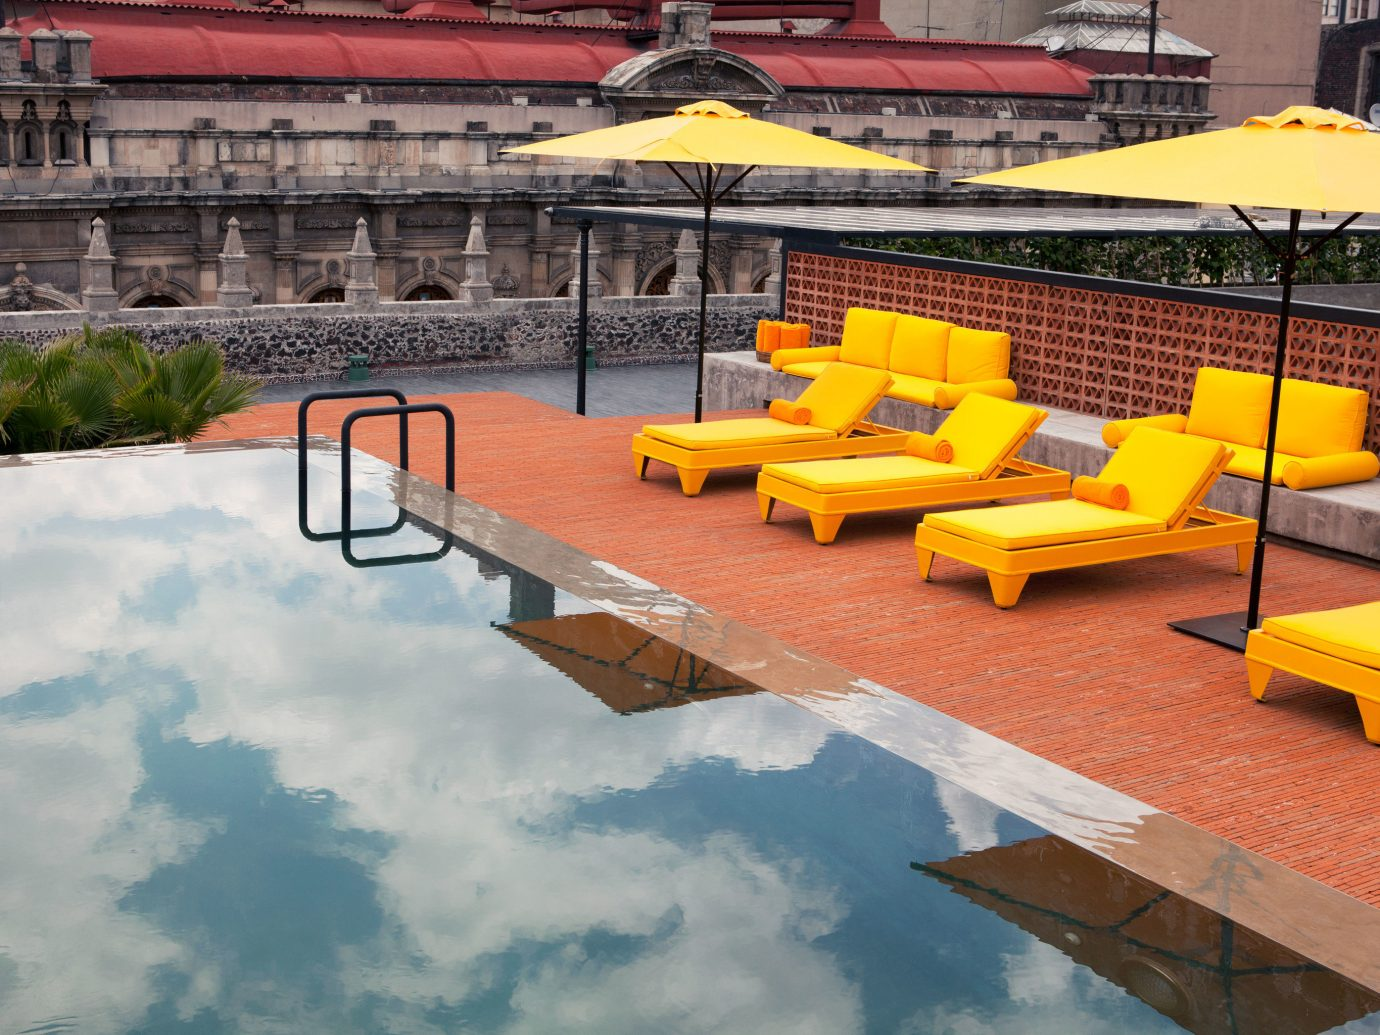 Hotels table outdoor leisure chair swimming pool yellow backyard Resort estate Playground outdoor structure